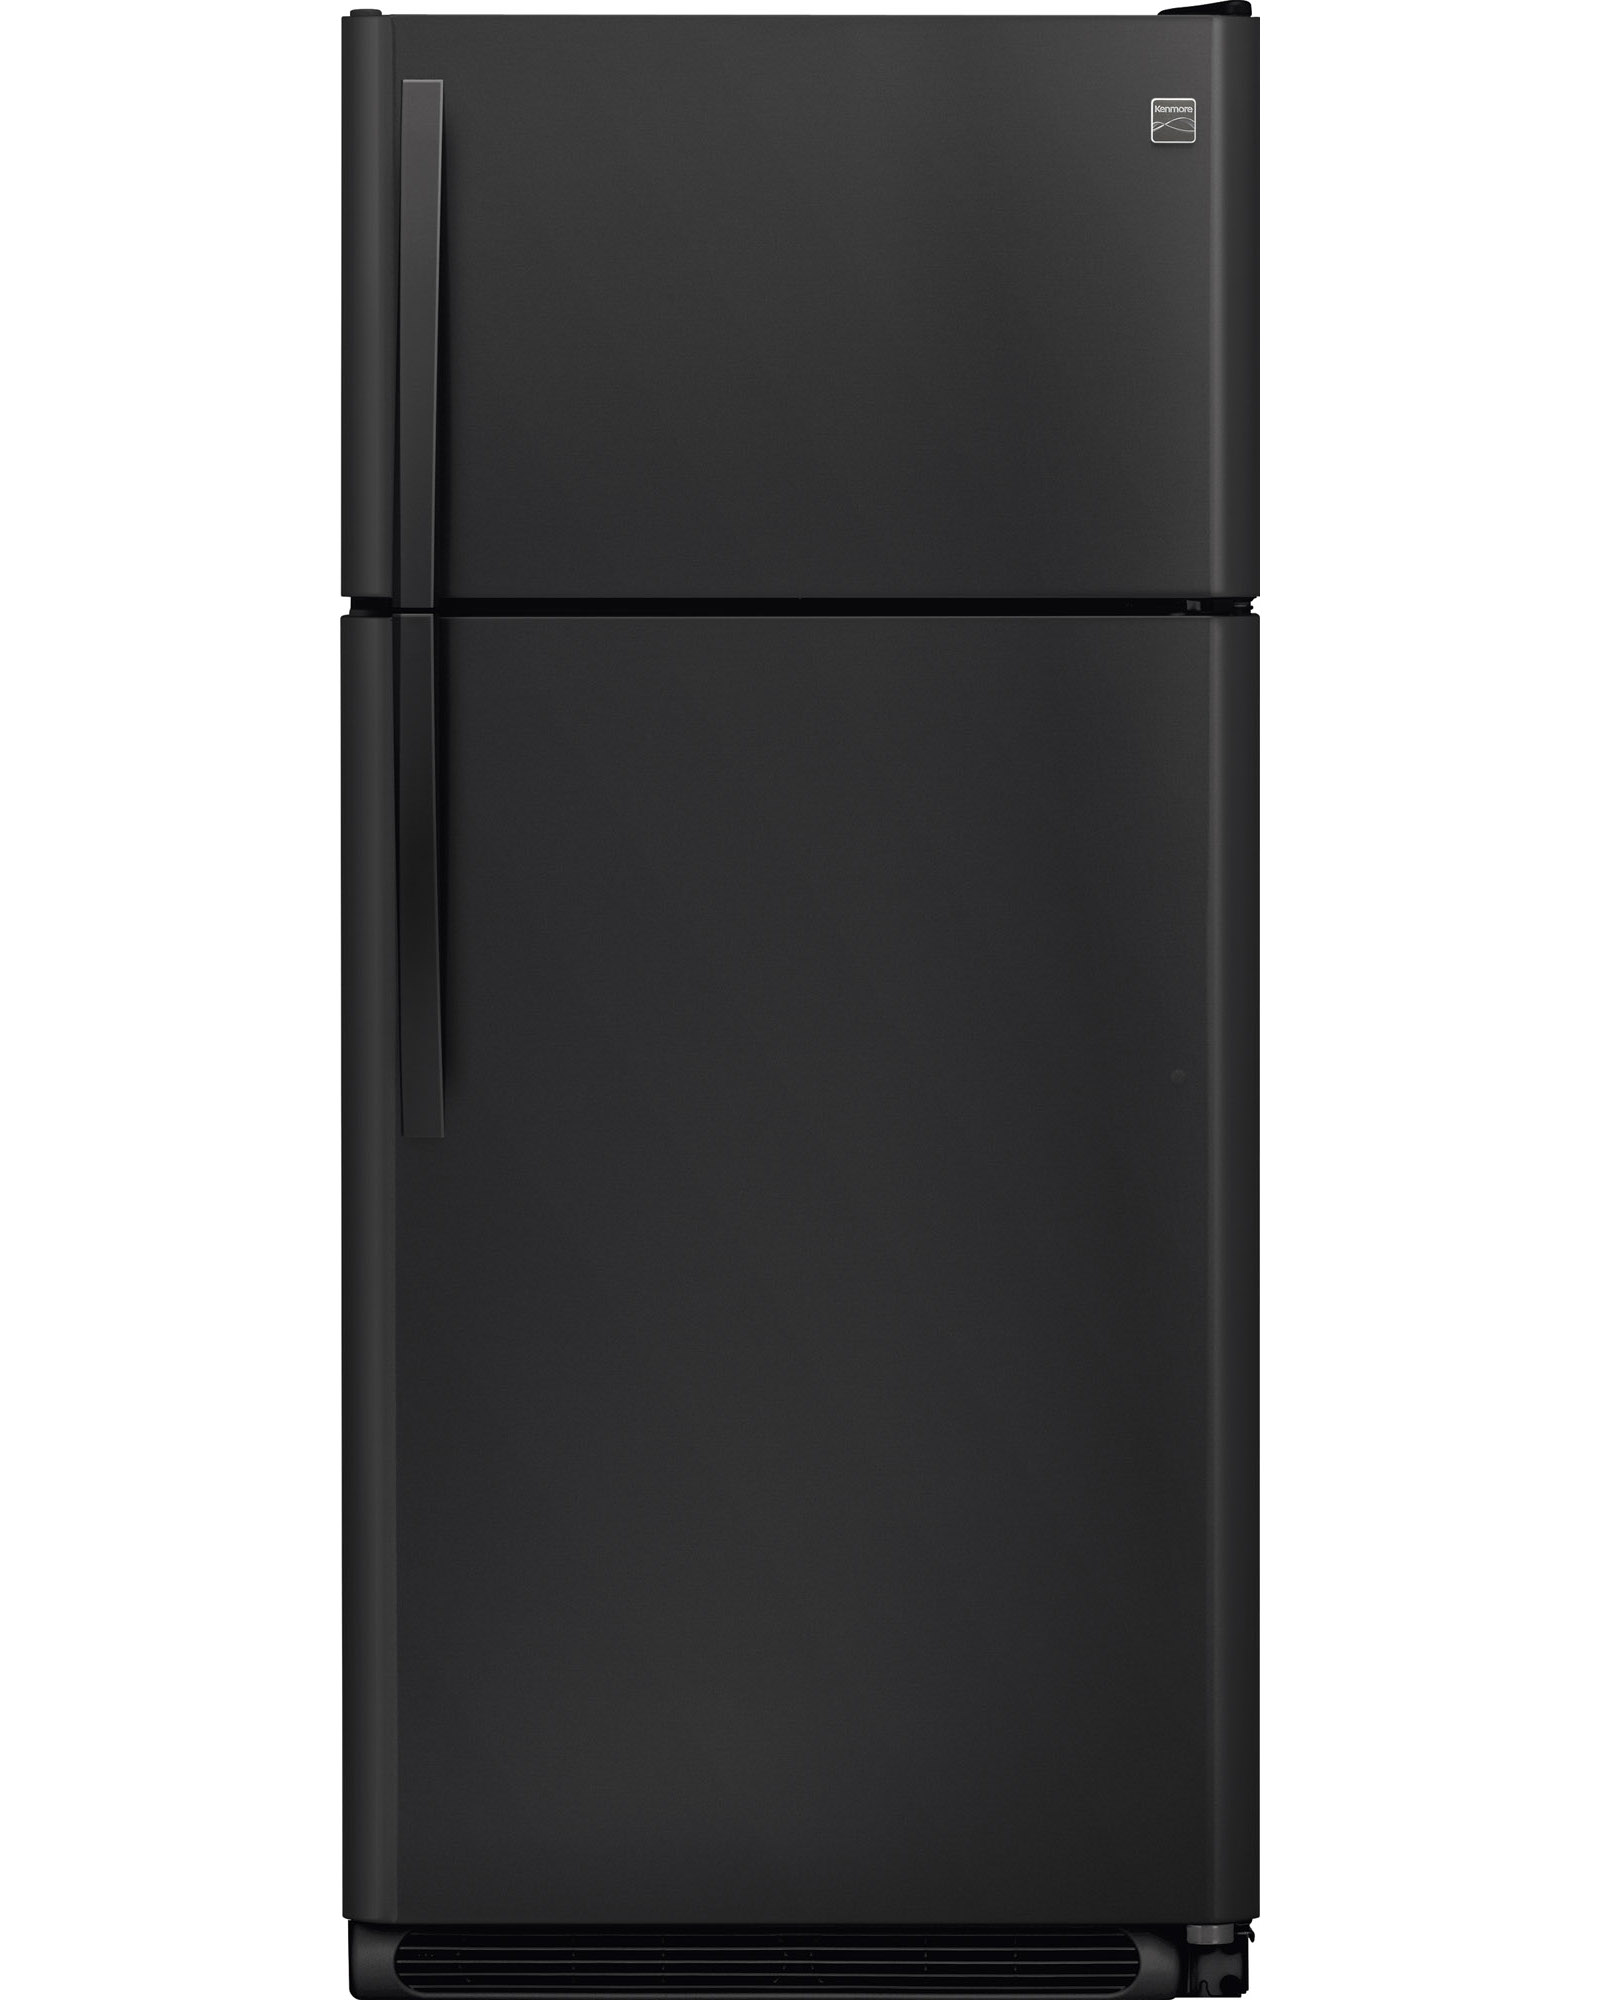 60509-18-cu-ft-Top-Freezer-Refrigerator-w-Glass-Shelves-Black